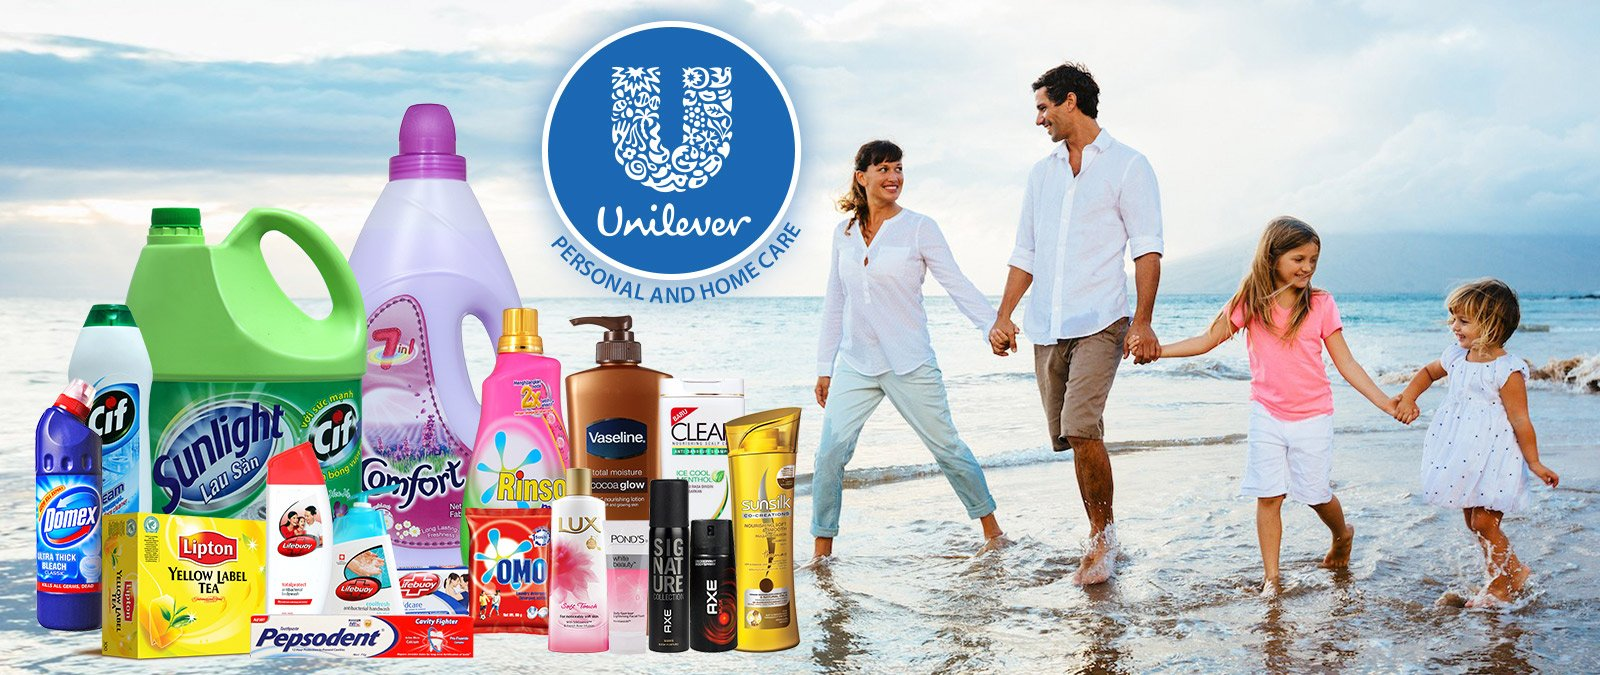 Bestbuy Maldives Home & Personal Care